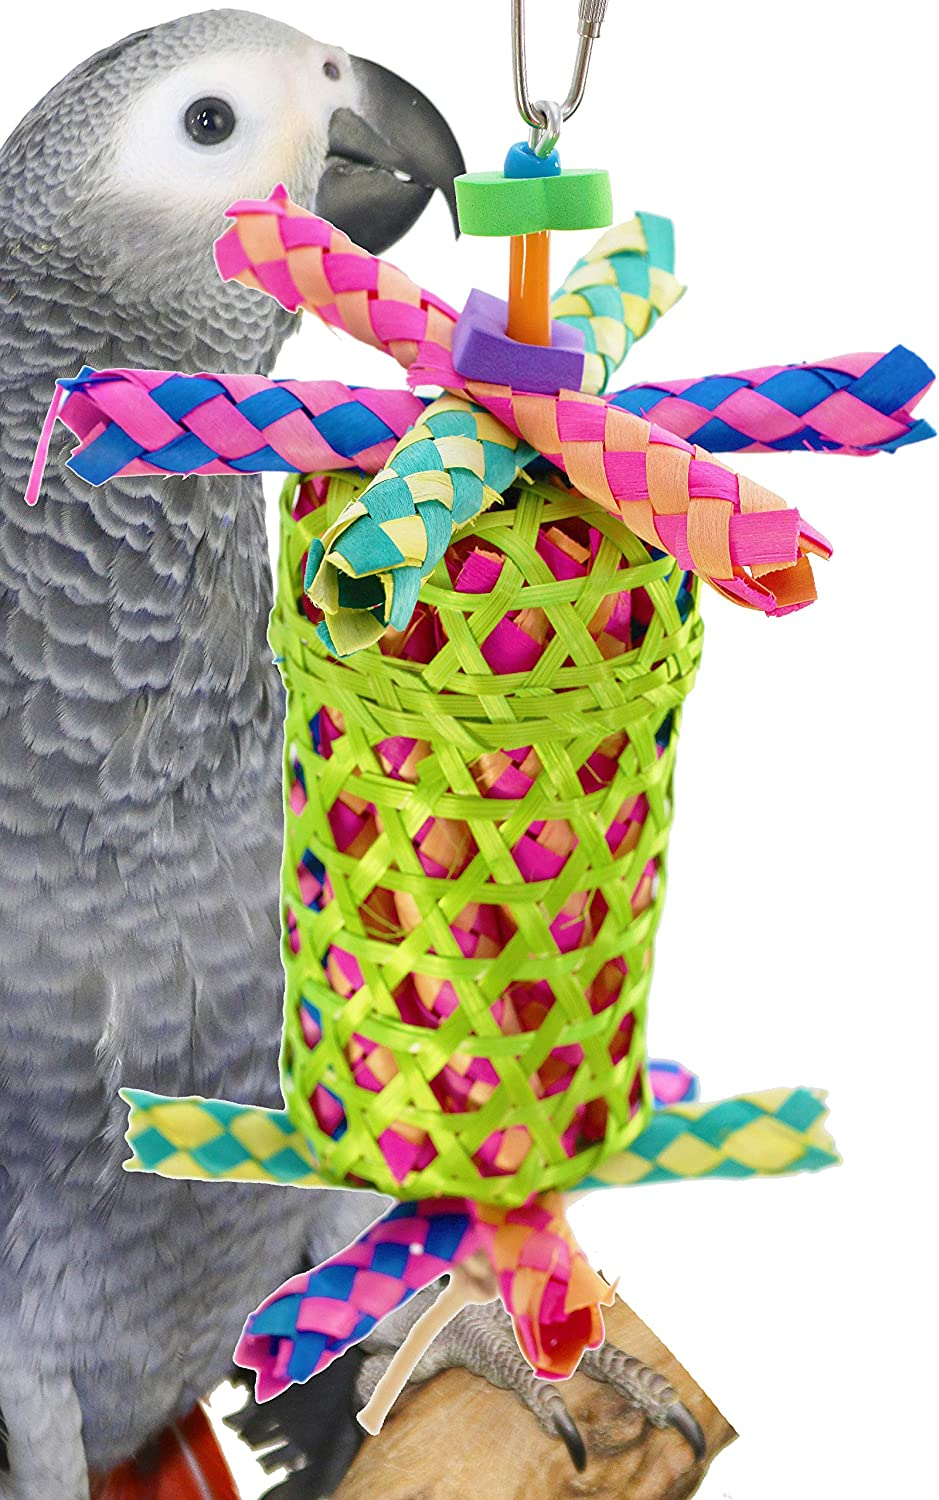 Bonka Bird Toys 1755 Large Drum Cage Toys Cages Foraging Chew Shredder Amazon. Quality Product Hand Made in The USA.